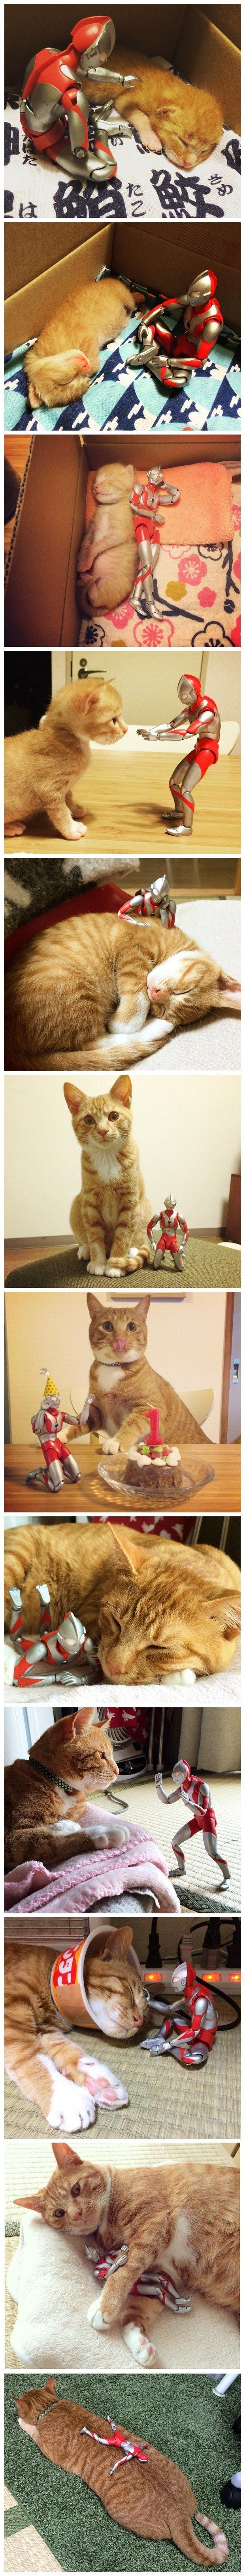 This Cat's Favorite Toy Has Been With Him Since He Was a Baby - Cheezburger - Funny Memes | Funny Pictures | Cats | Animals | Gifs | Dogs | Fails